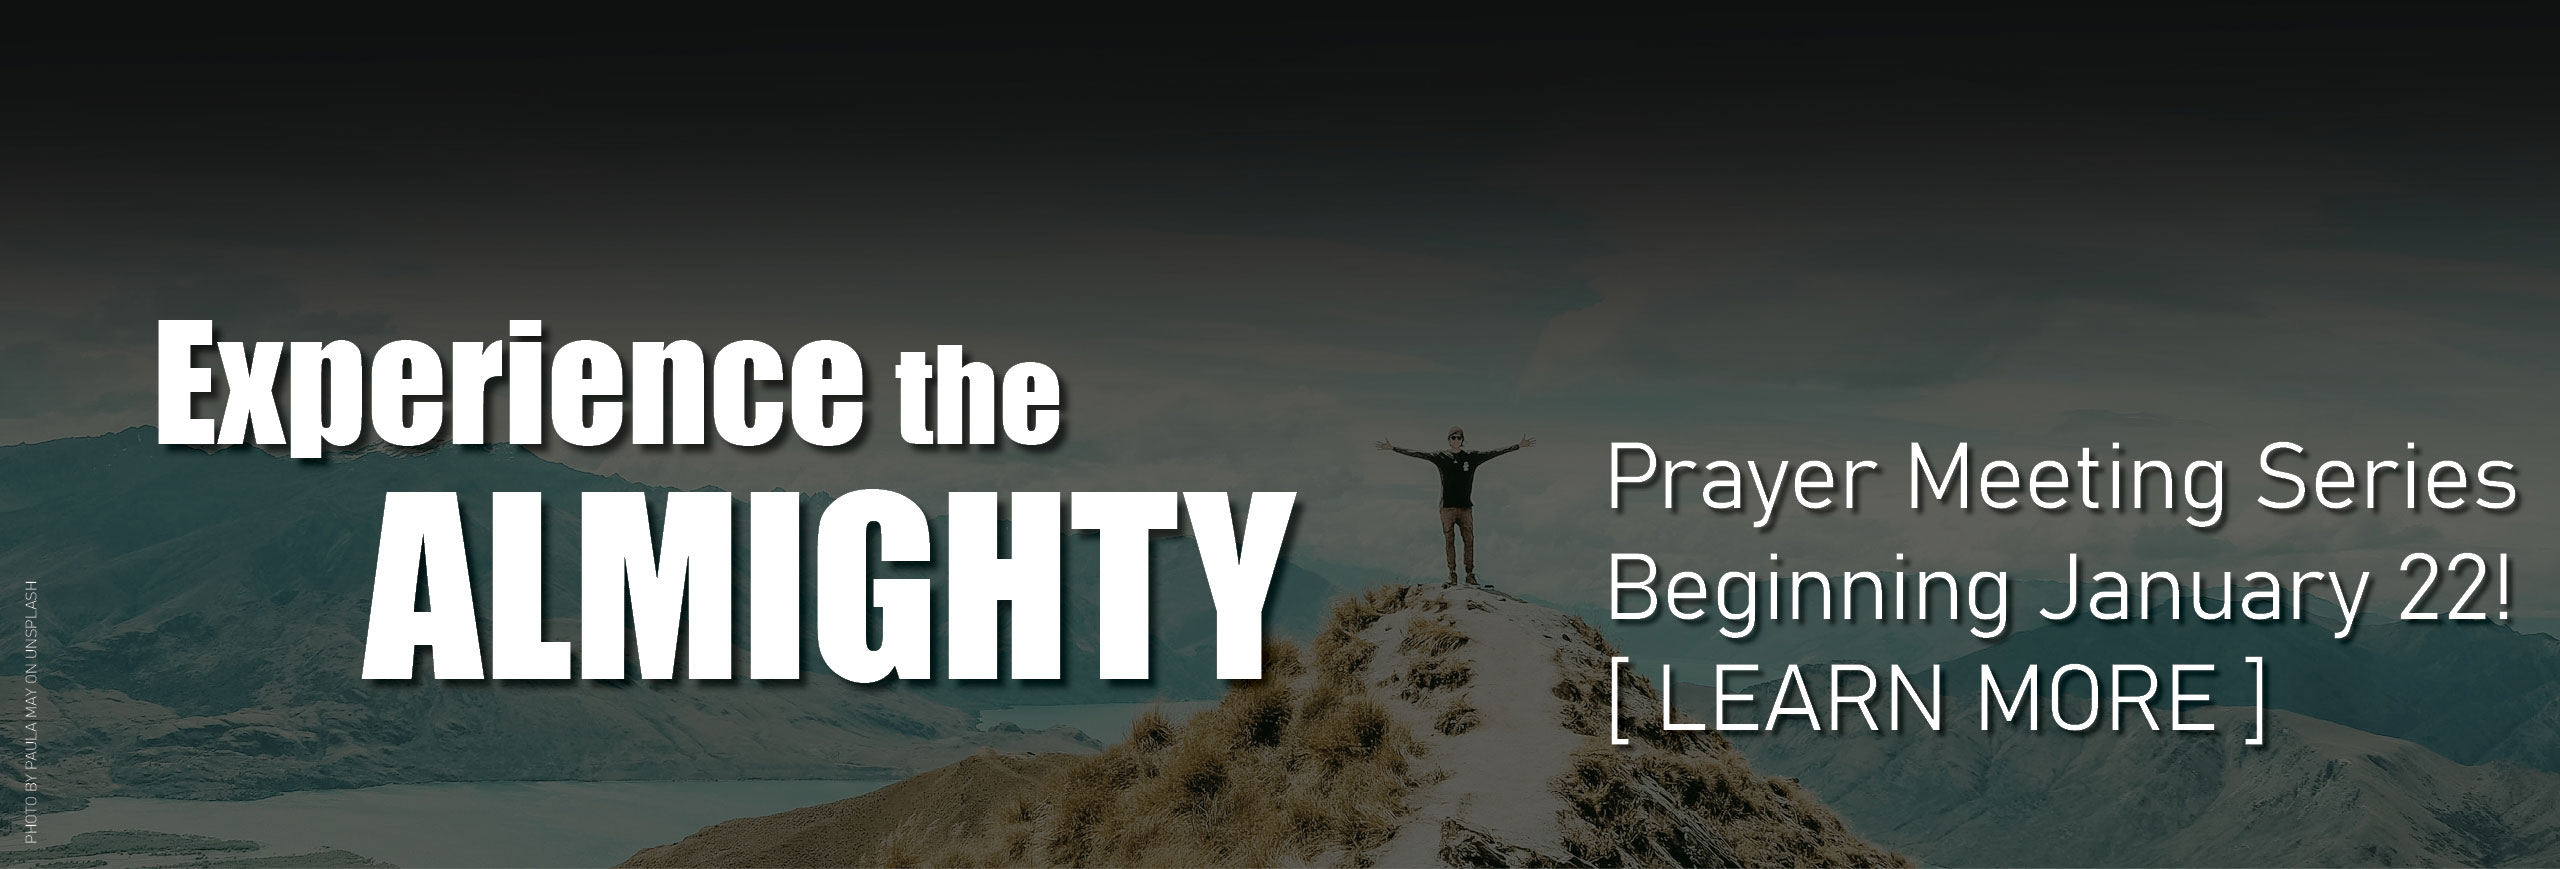 """Experience the Almighty"" Prayer Meeting Series Starts January 22 @ 7pm"